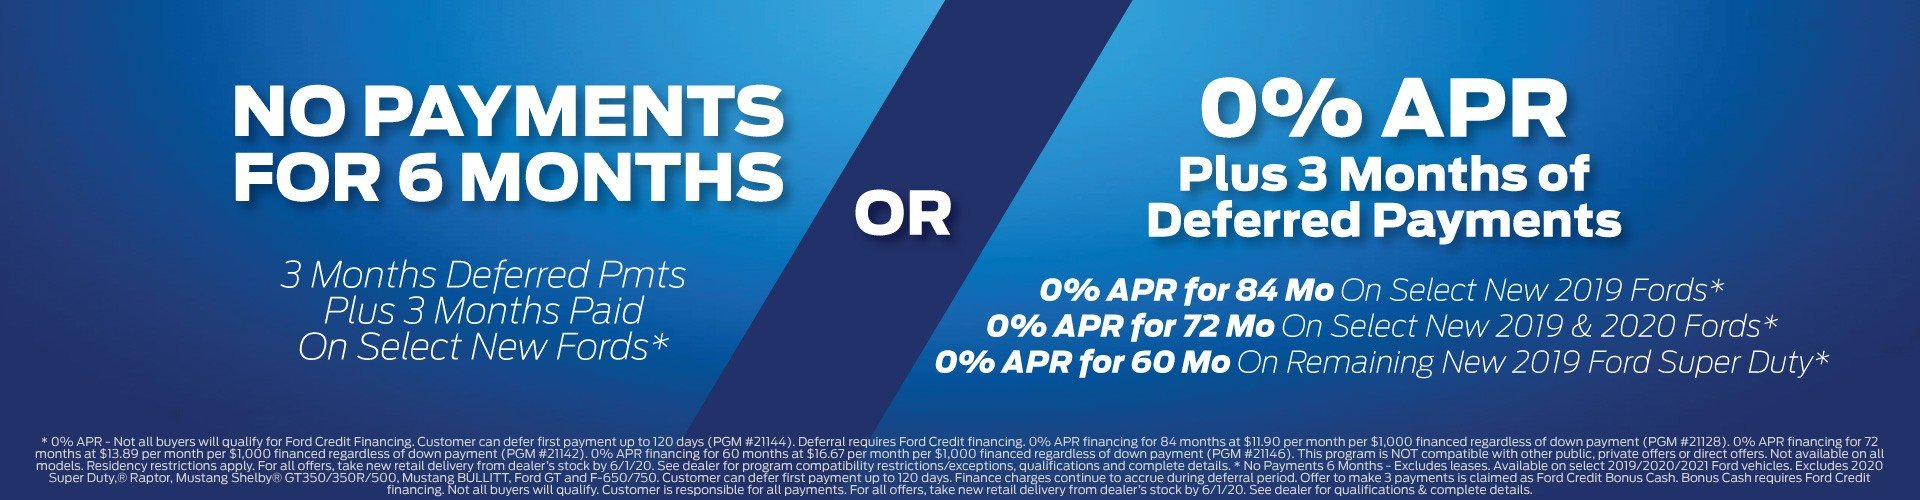 No Payment 6 Months or 0% APR Expires 6/1/2020